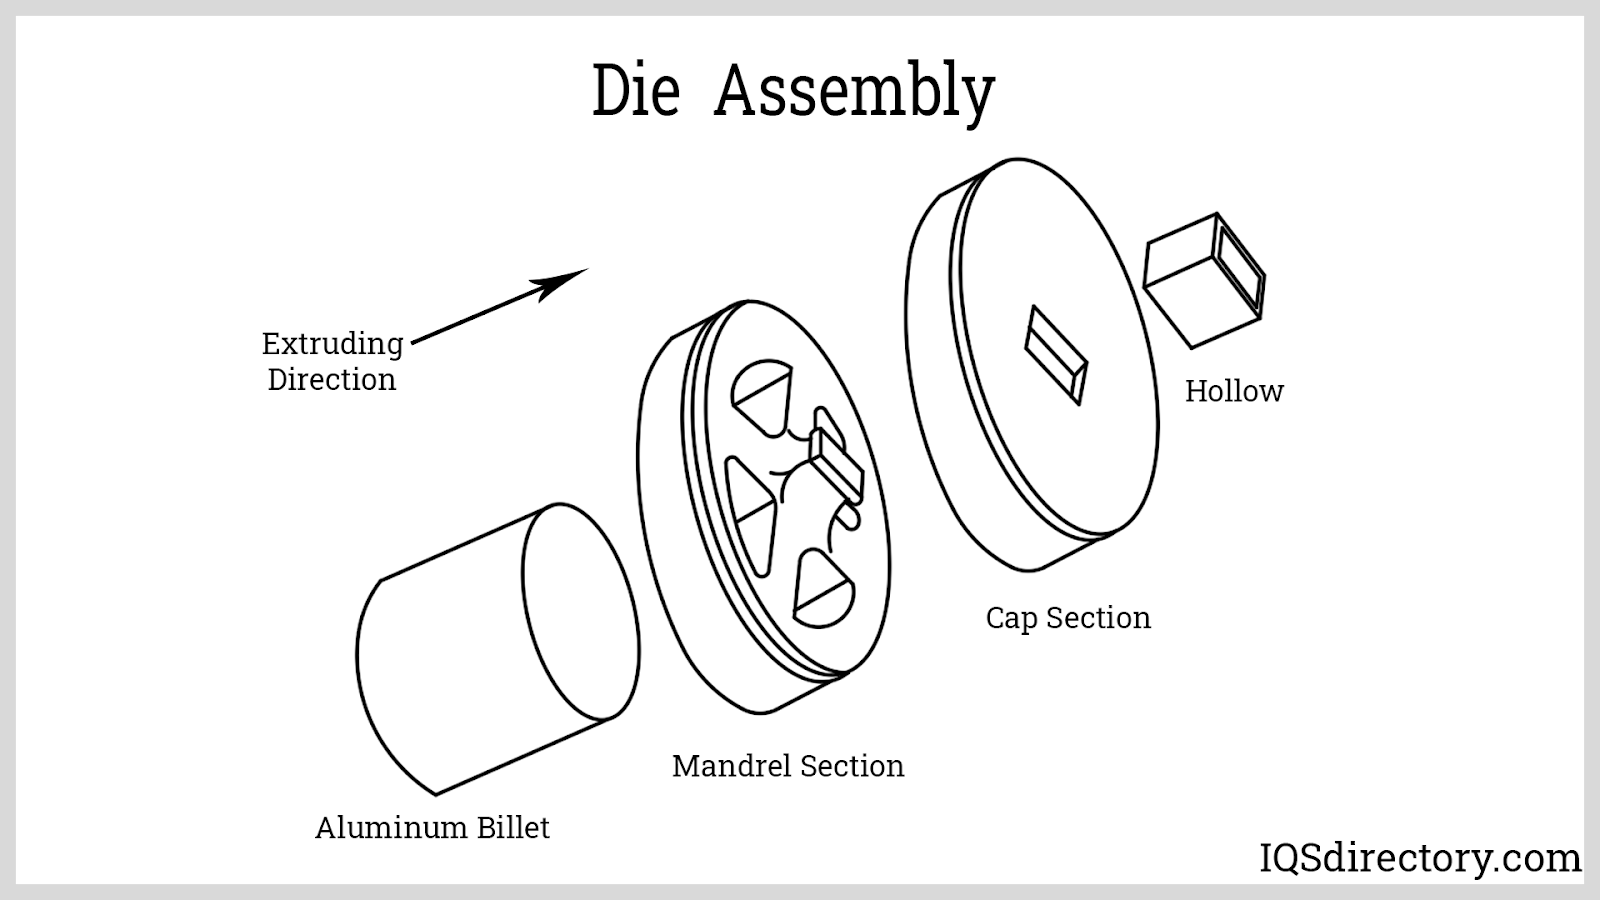 Die Assembly